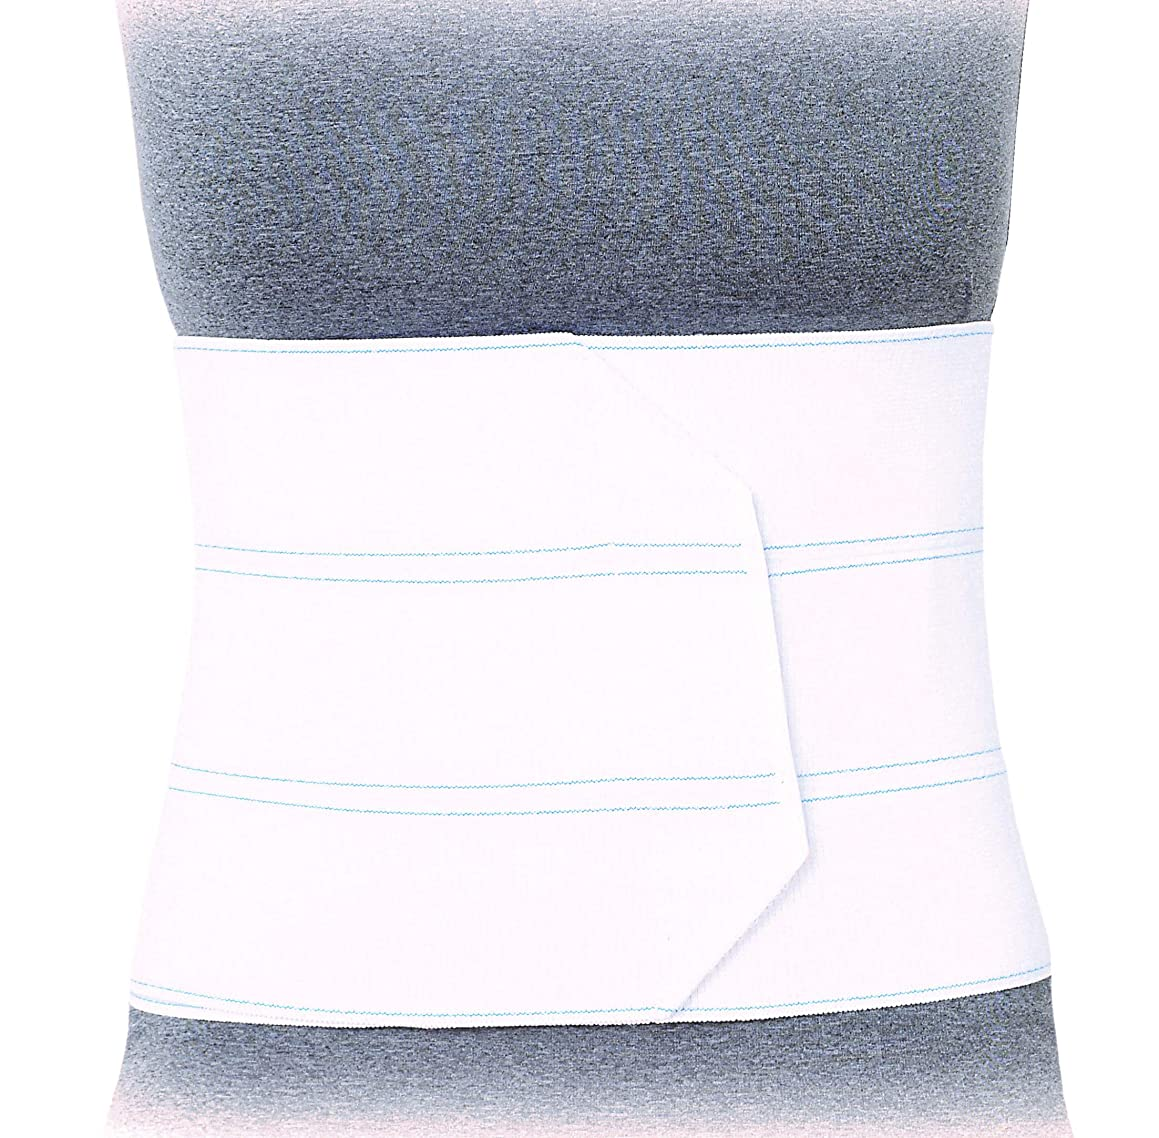 Superior Braces Premium Abdominal Binder for Waist and Back Support, Compression Wrap, Post Surgery Support (4 Panel - Small/Medium, 30